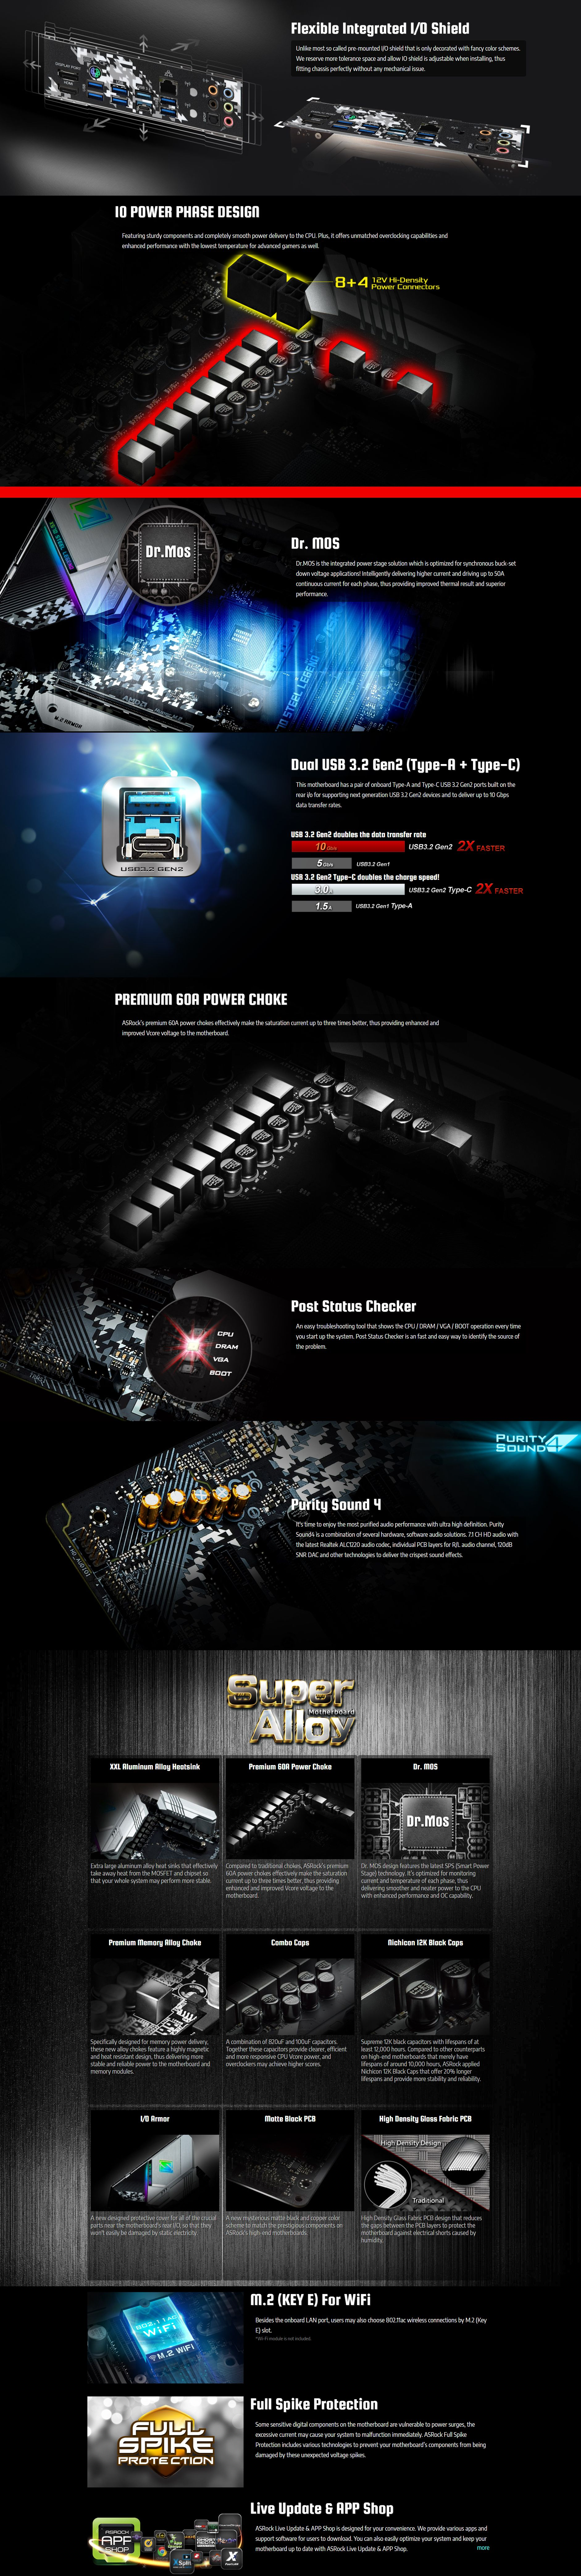 ASRock X570 Steel Legend AM4 ATX Motherboard